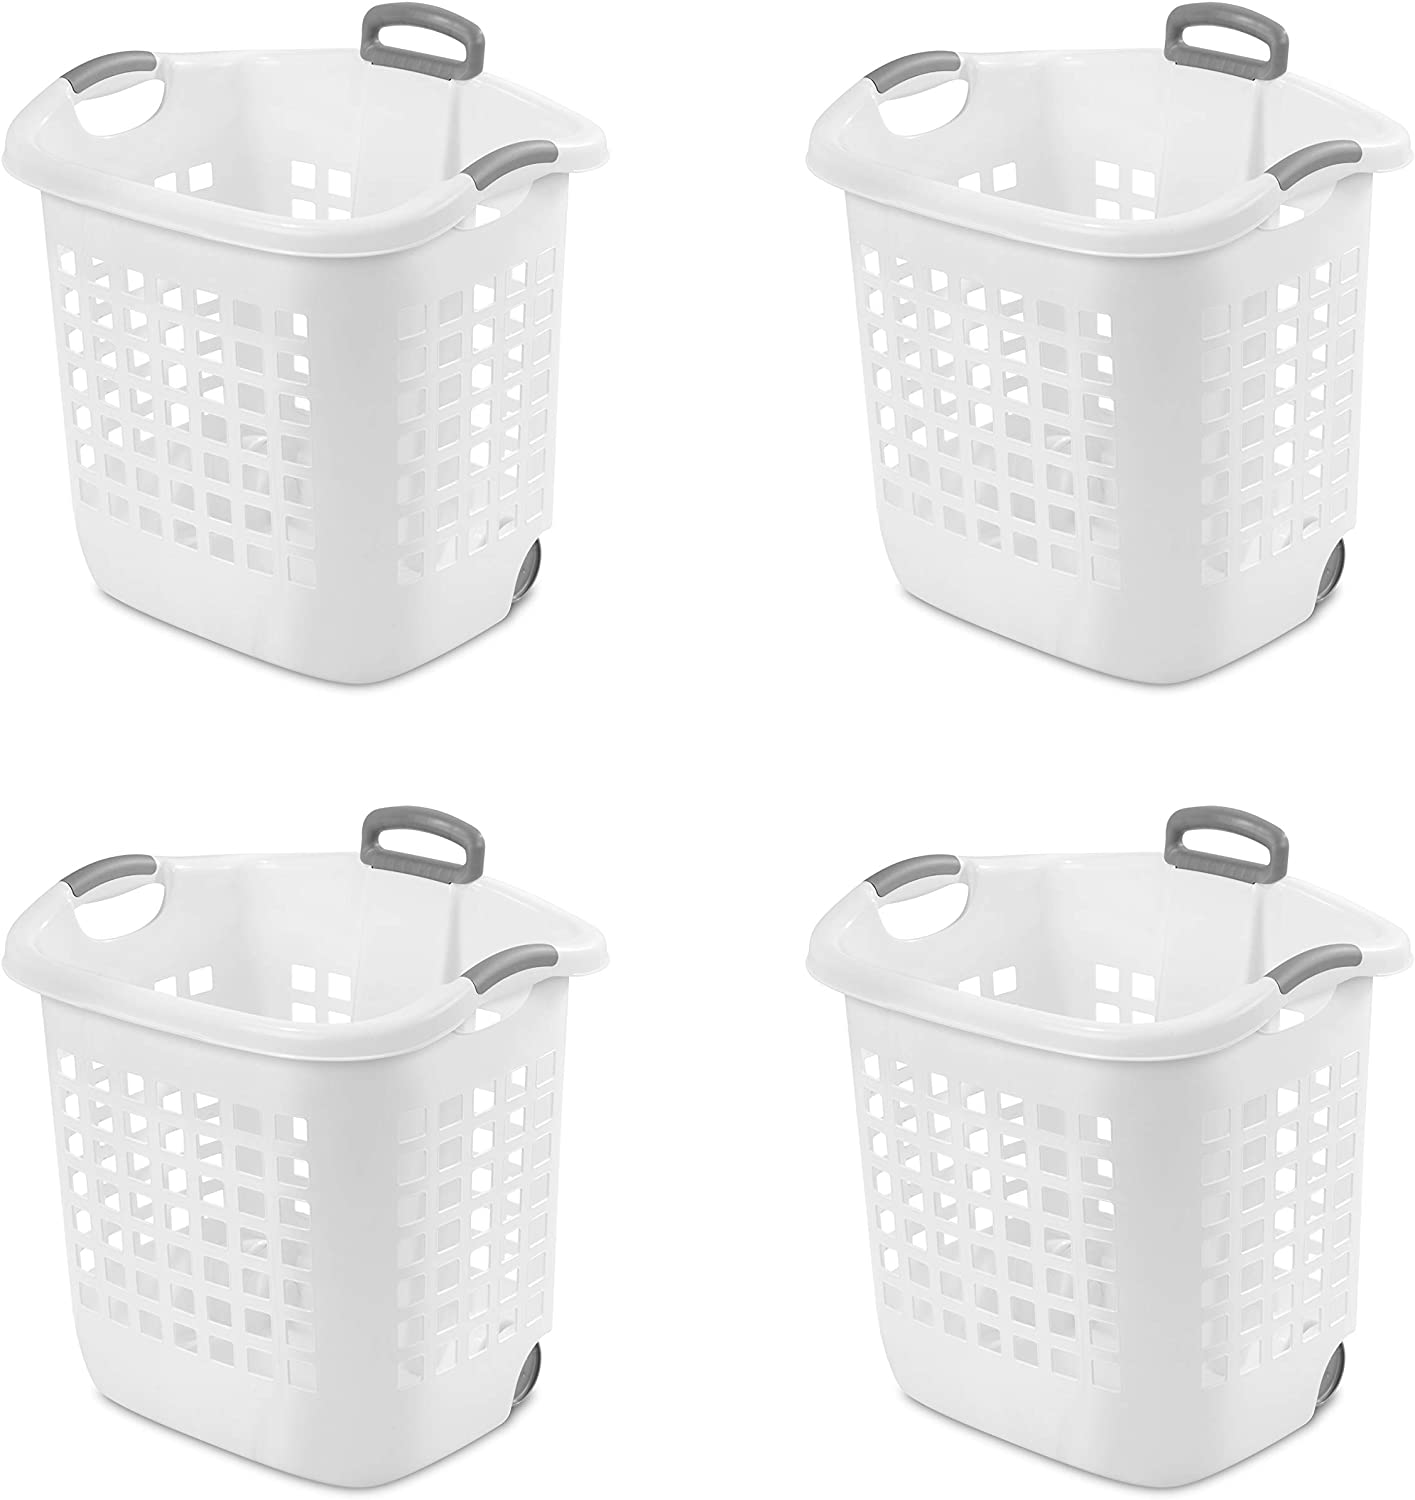 STERILITE 12248004 Laundry Basket, 62 L, White, Pack of 4